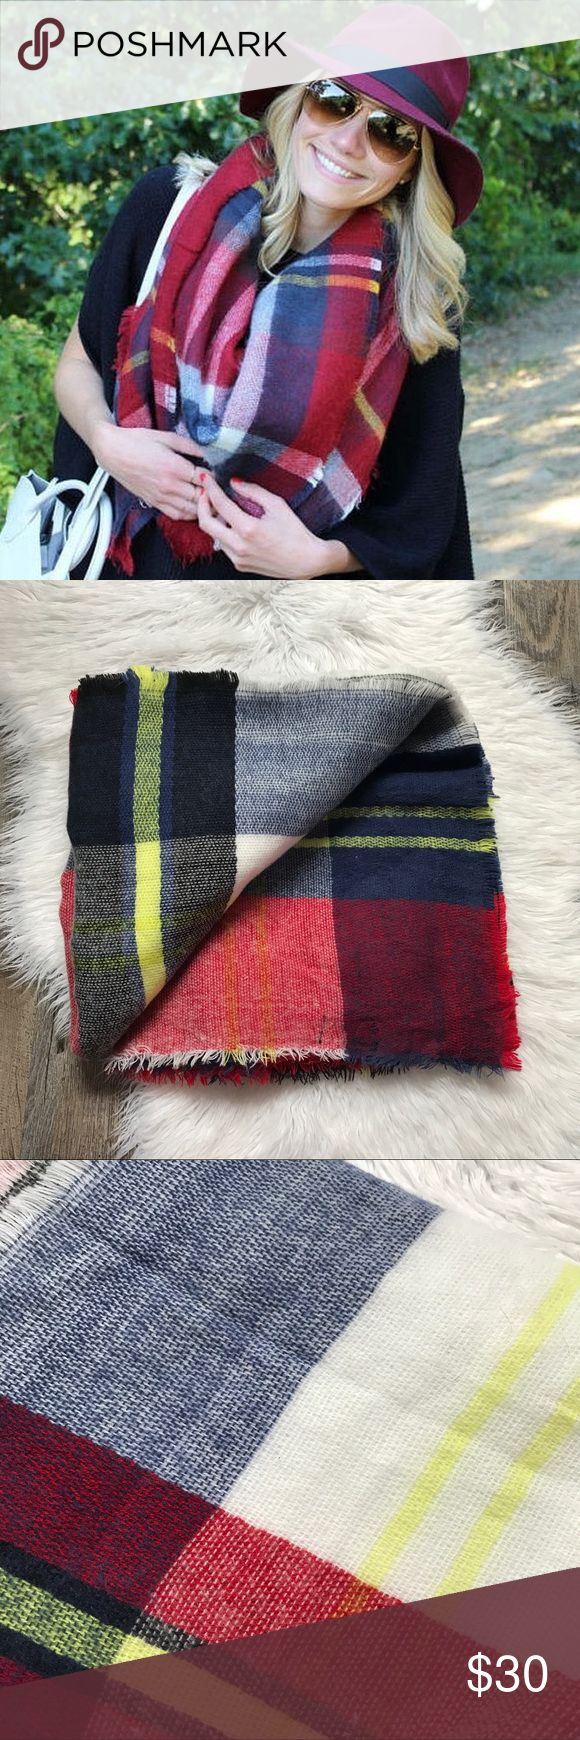 Zara Plaid Tartan Blanket Scarf Blue yellow red and white large plaid blanket scarf from Zara. Excellent condition. No trades! Zara Accessories Scarves & Wraps